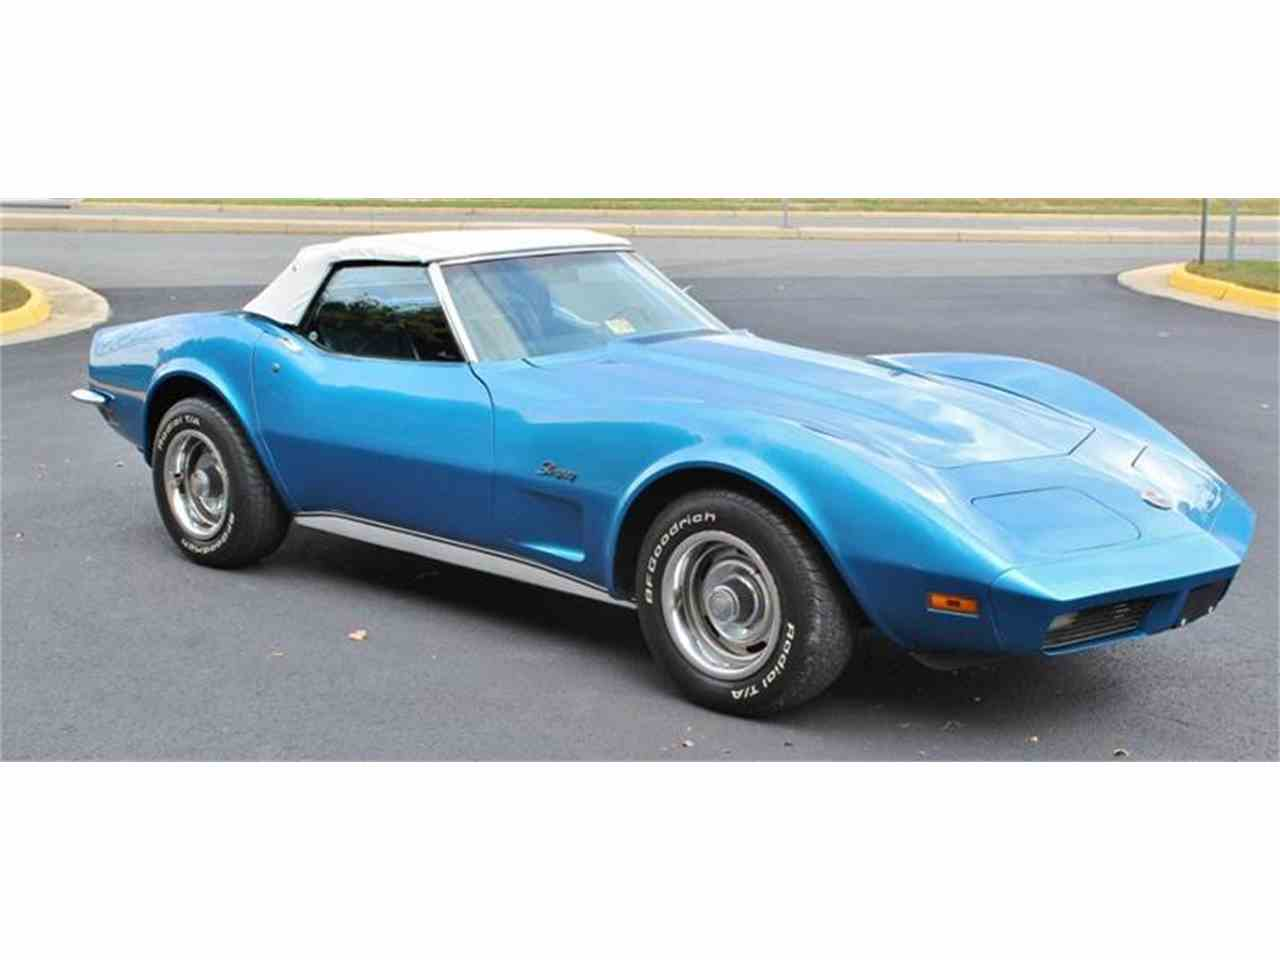 Large Picture of 1973 Corvette located in Triangle Virginia - $28,500.00 - JSVR